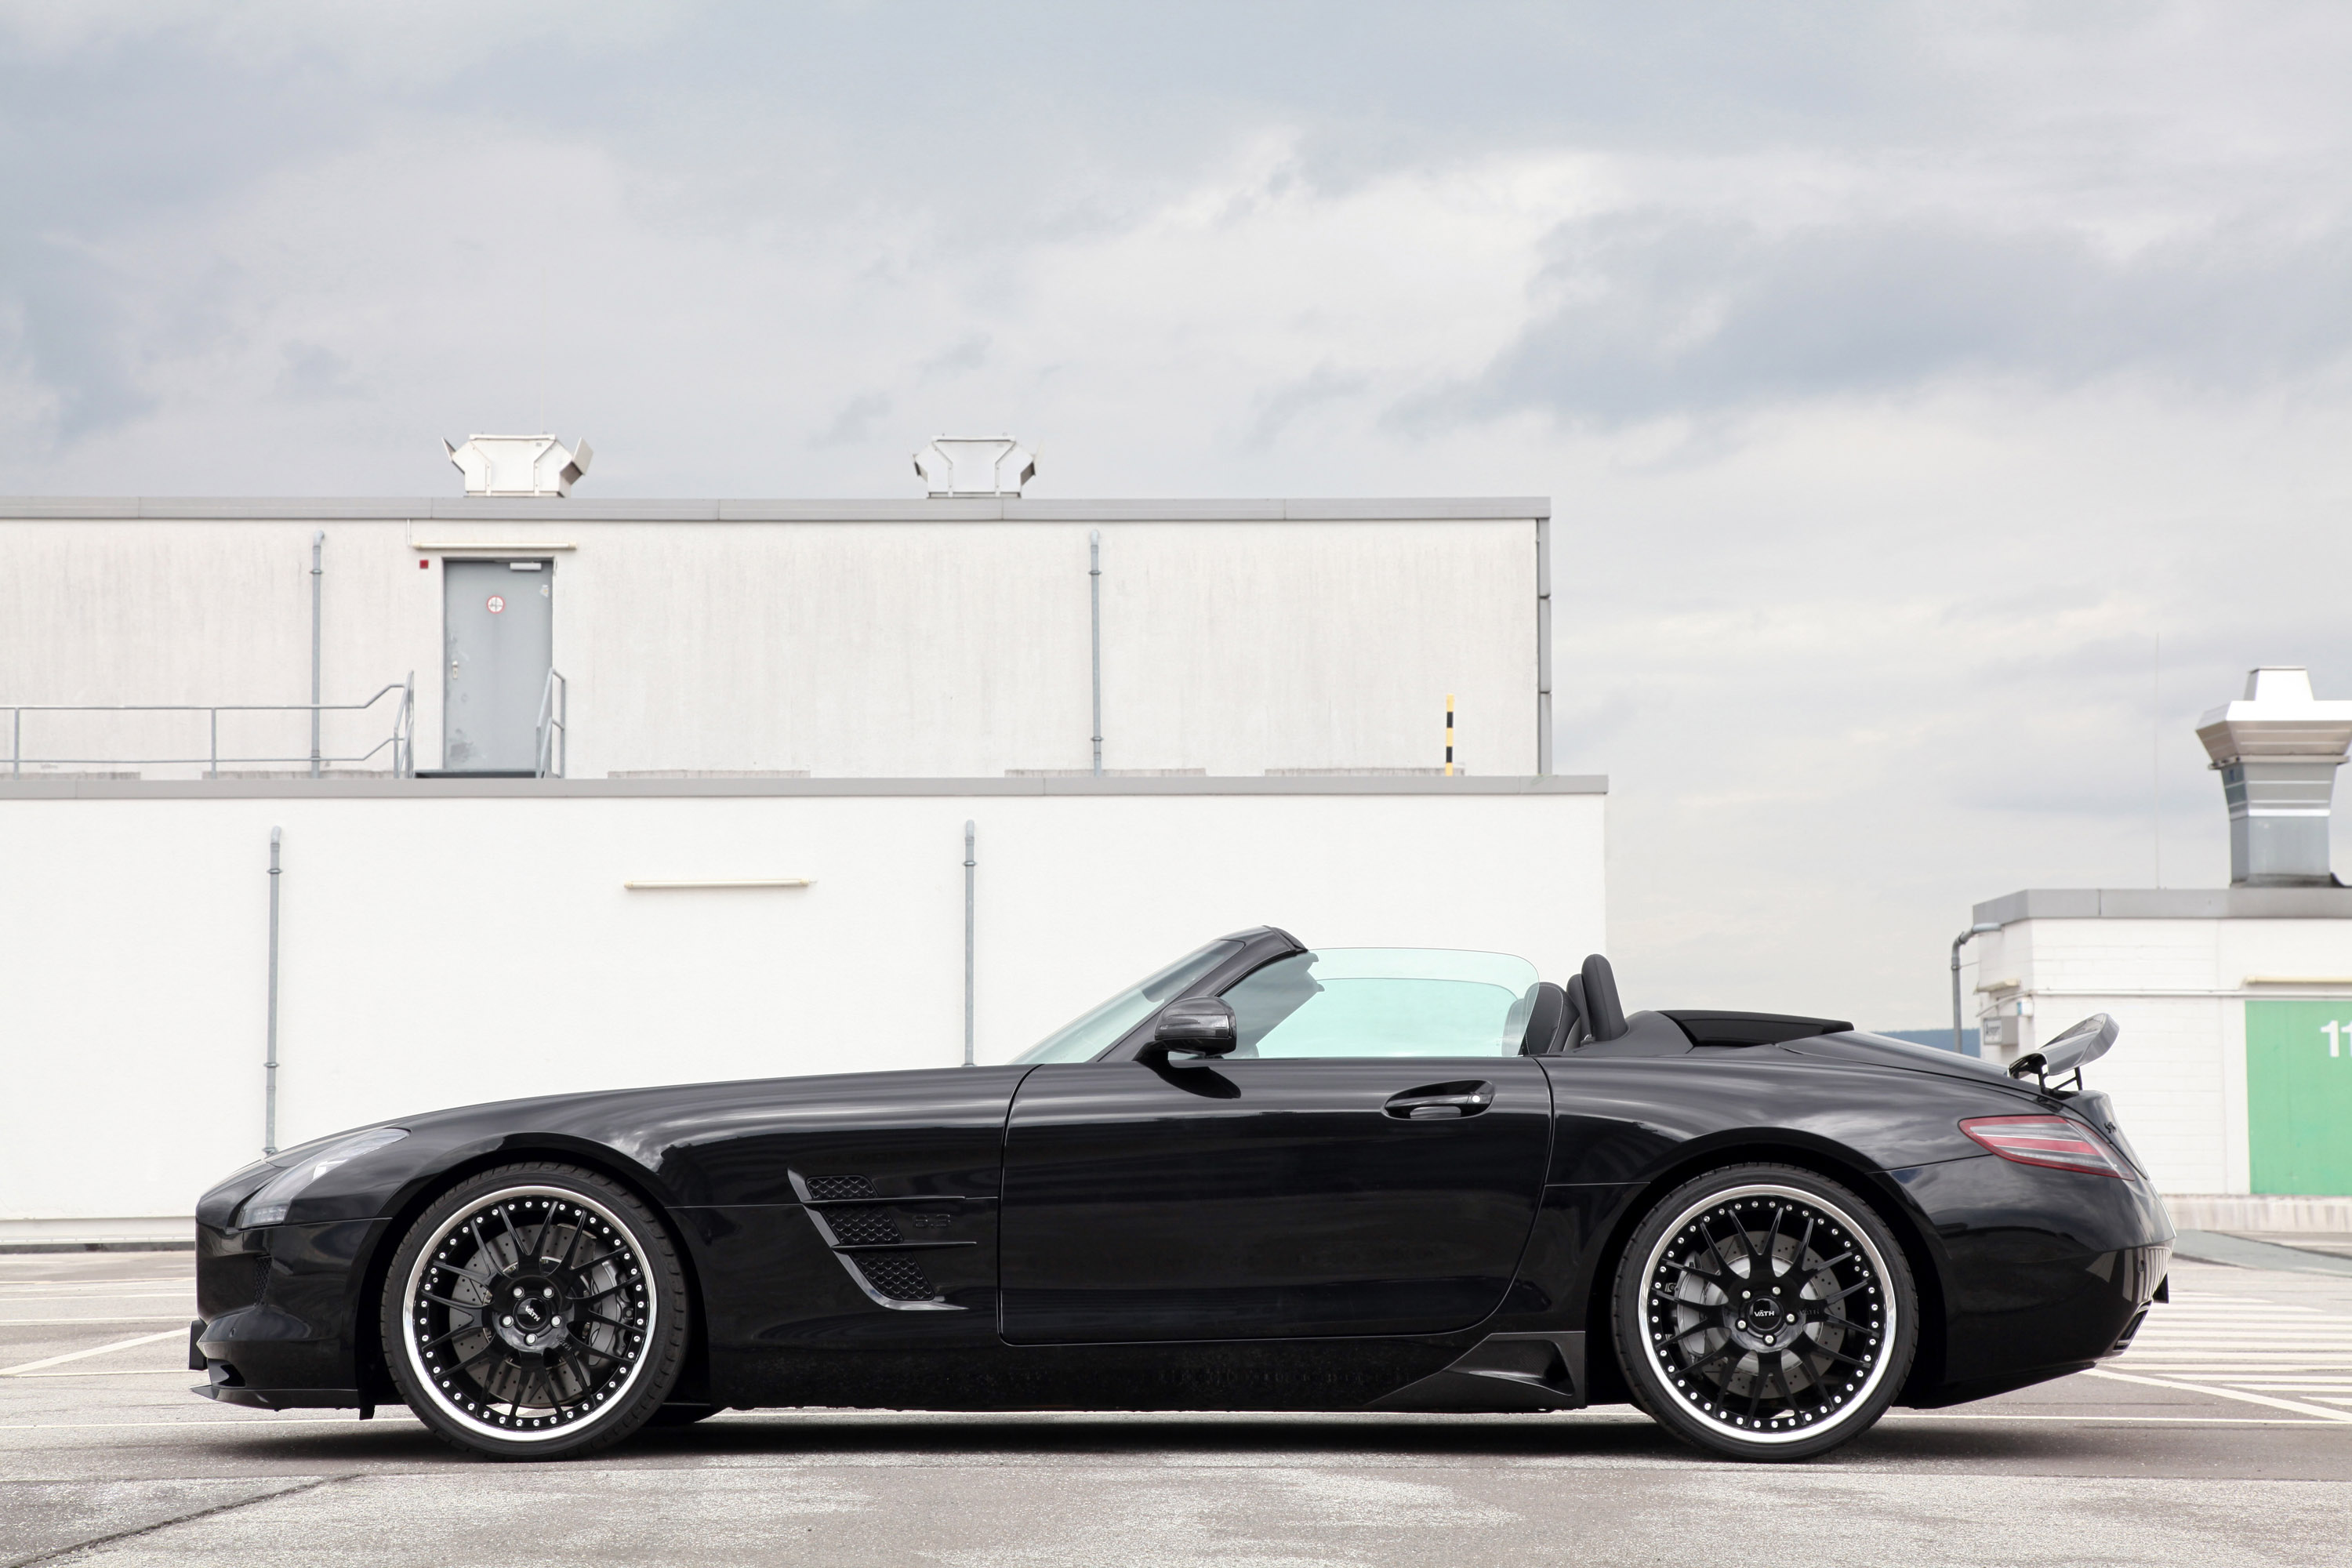 VATH Takes on the Mercedes-Benz AMG SLS Roadster